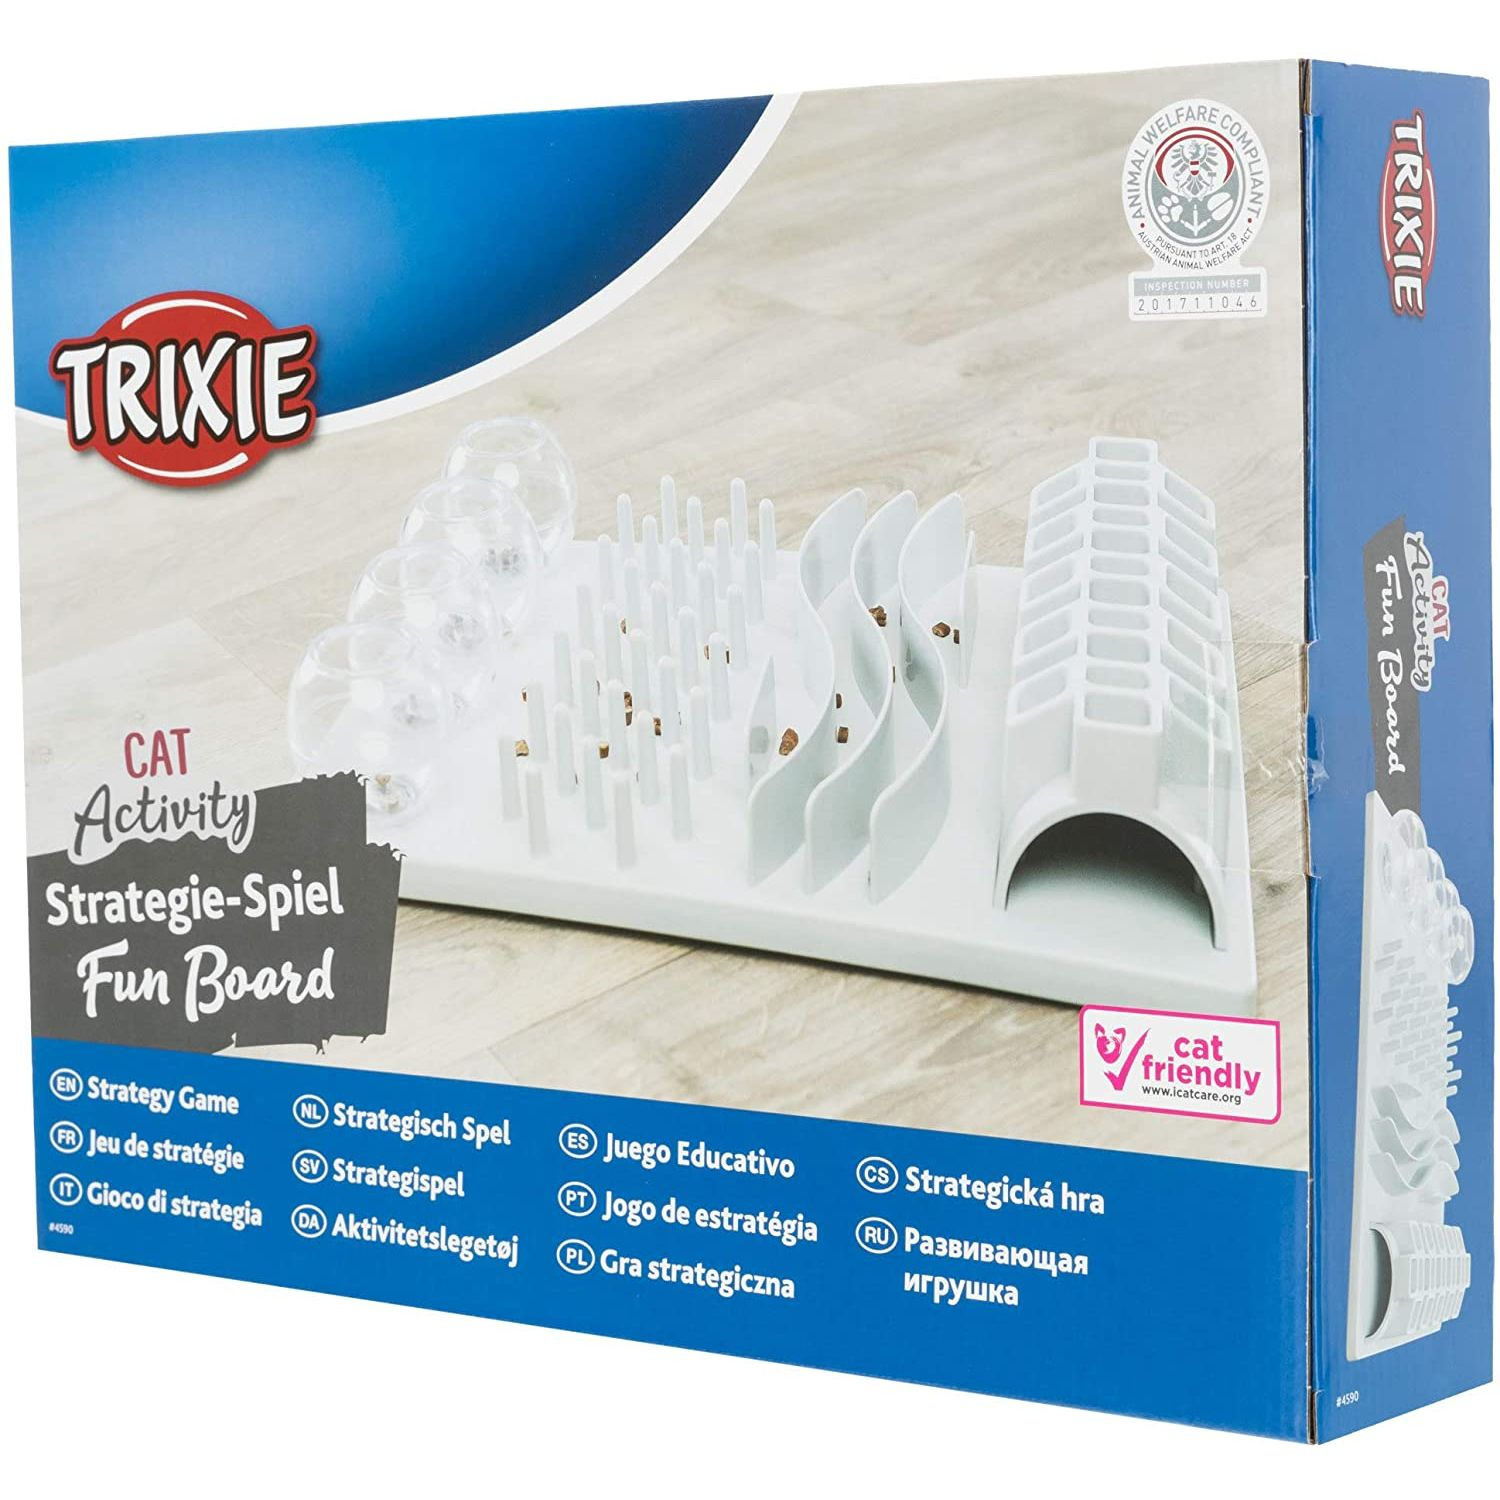 Trixie Cat Activity Fun Board - Cat Friendly Award Winner!